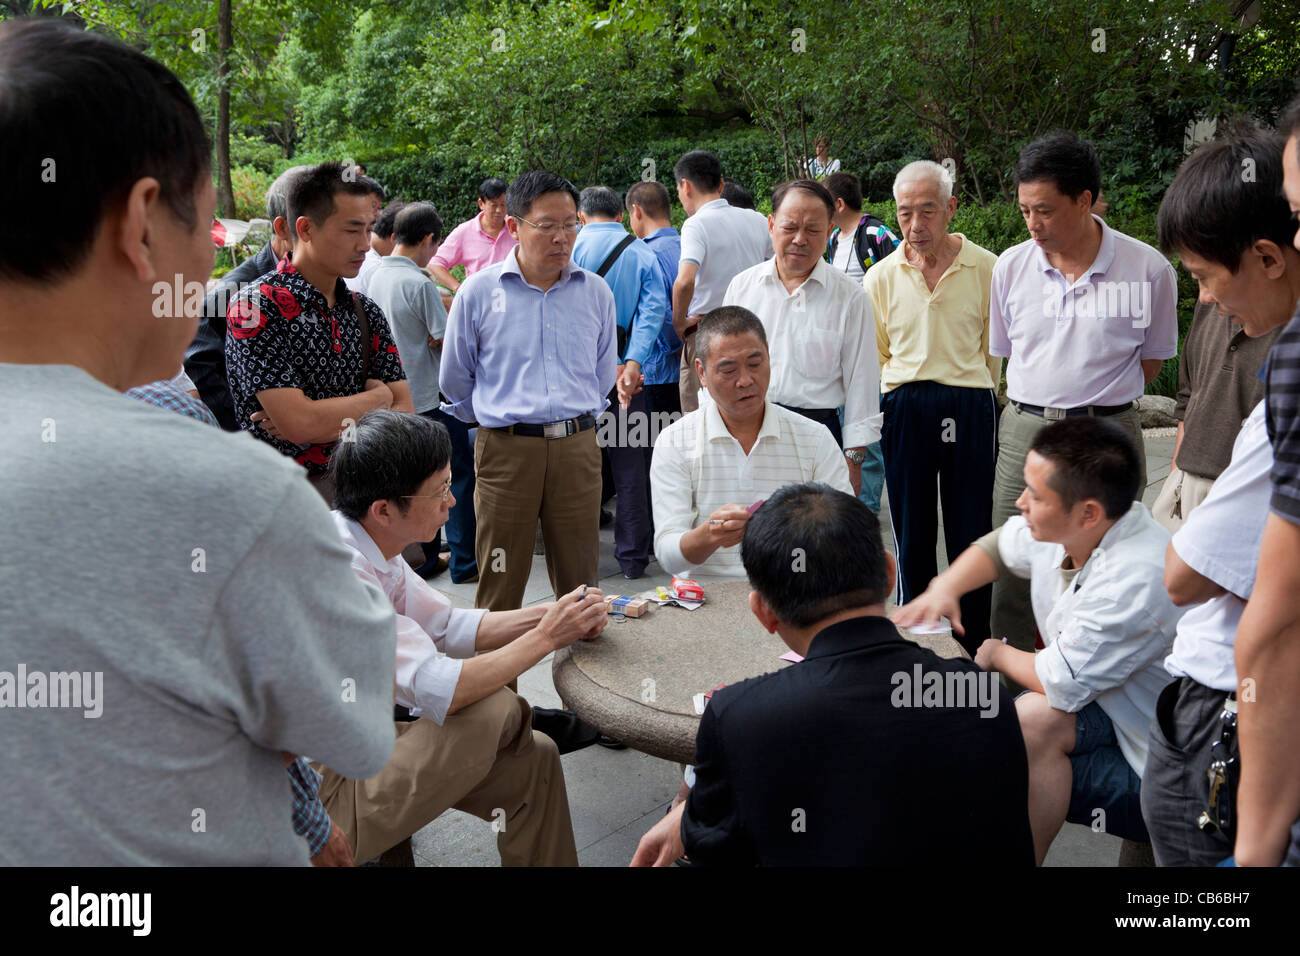 Chinese men playing cards in People's Park, Shanghai, PRC, People's Republic of China, Asia - Stock Image